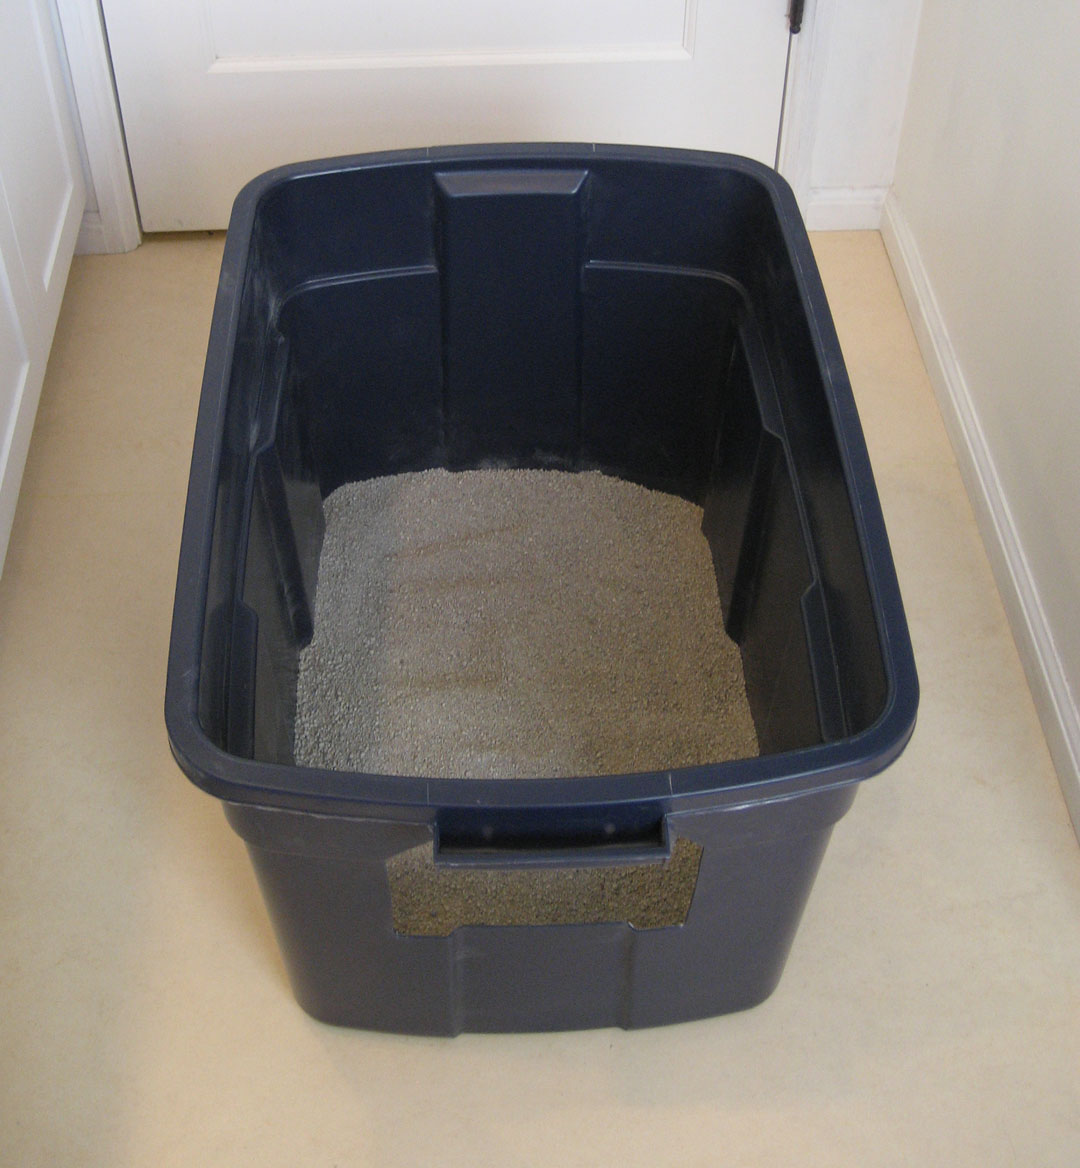 Diy Make Your Own Cat Litter Box Pet Project